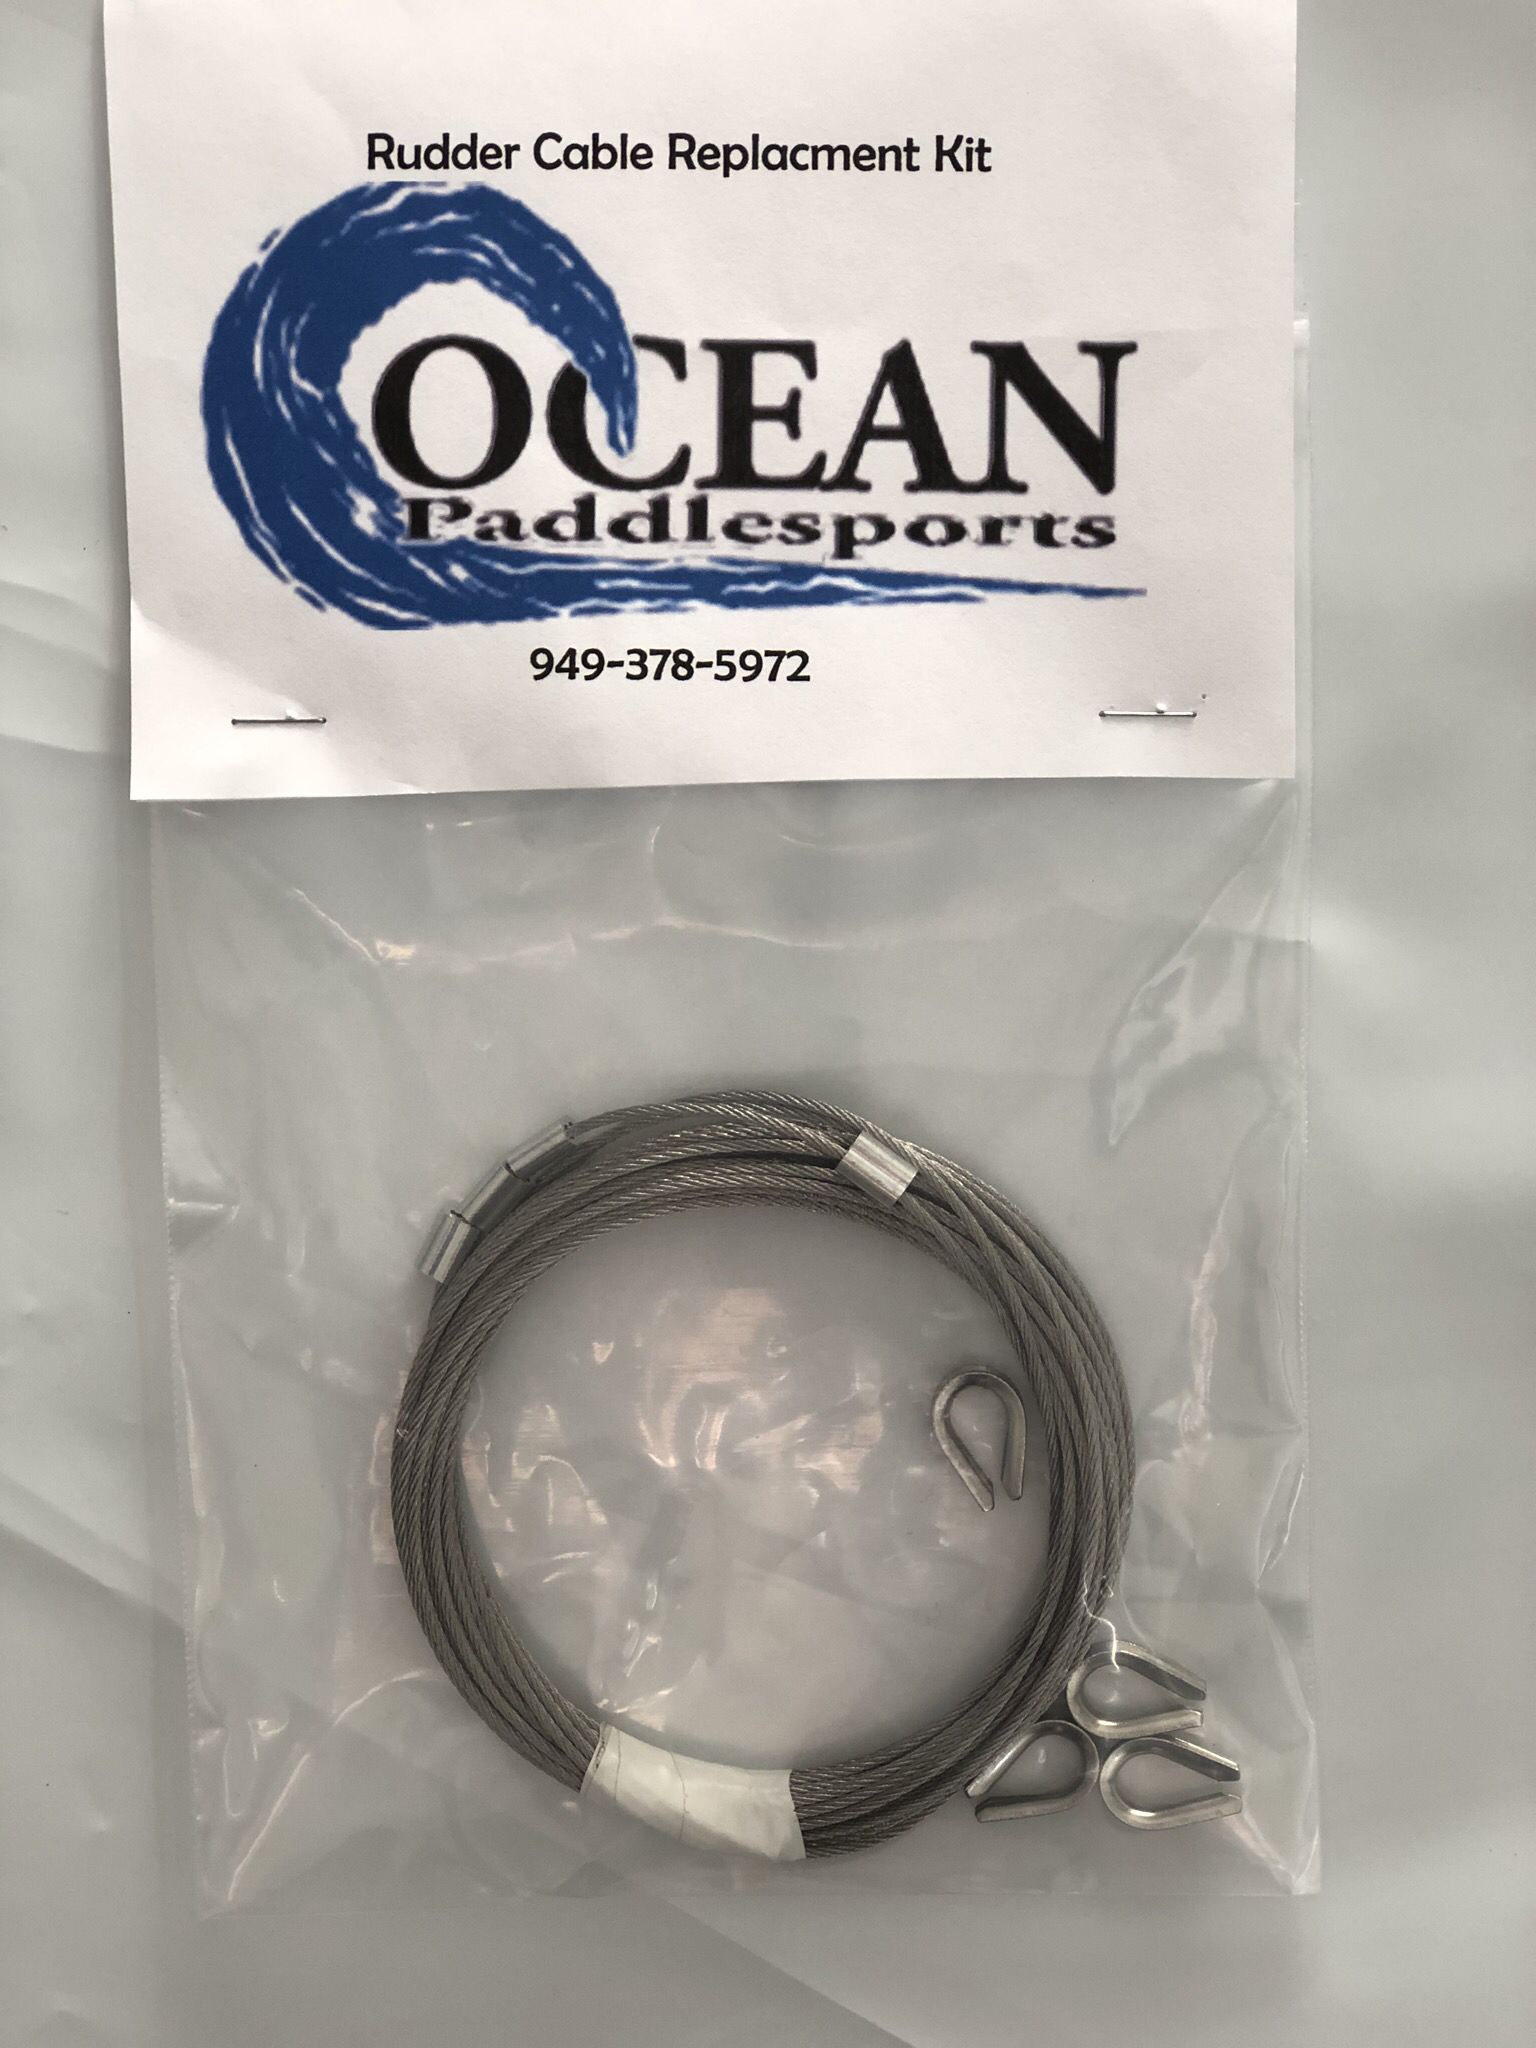 Rudder cable replacement kit